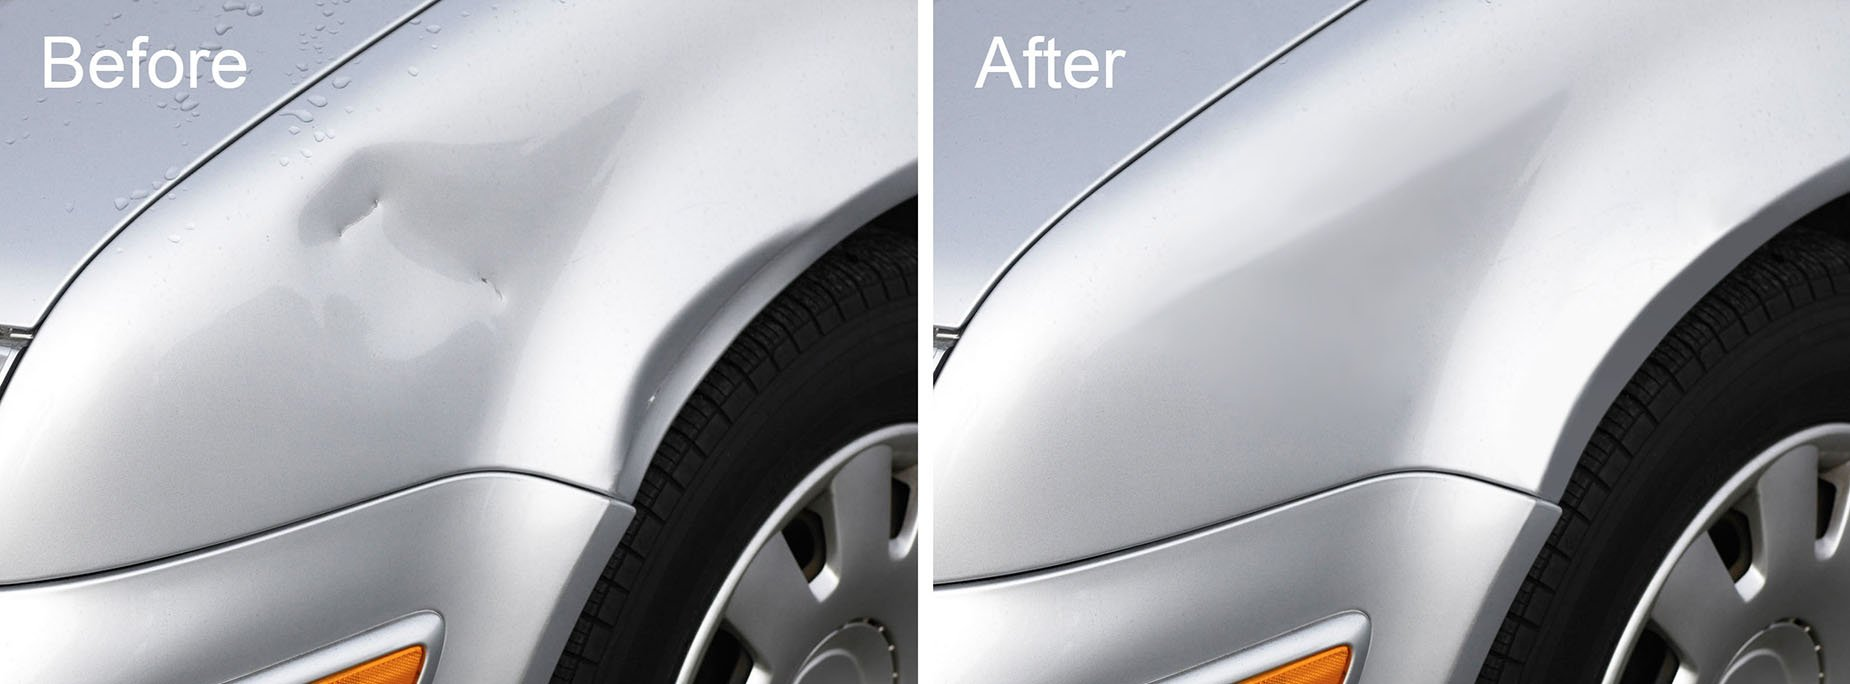 Dent Removal (Before & After) restoration